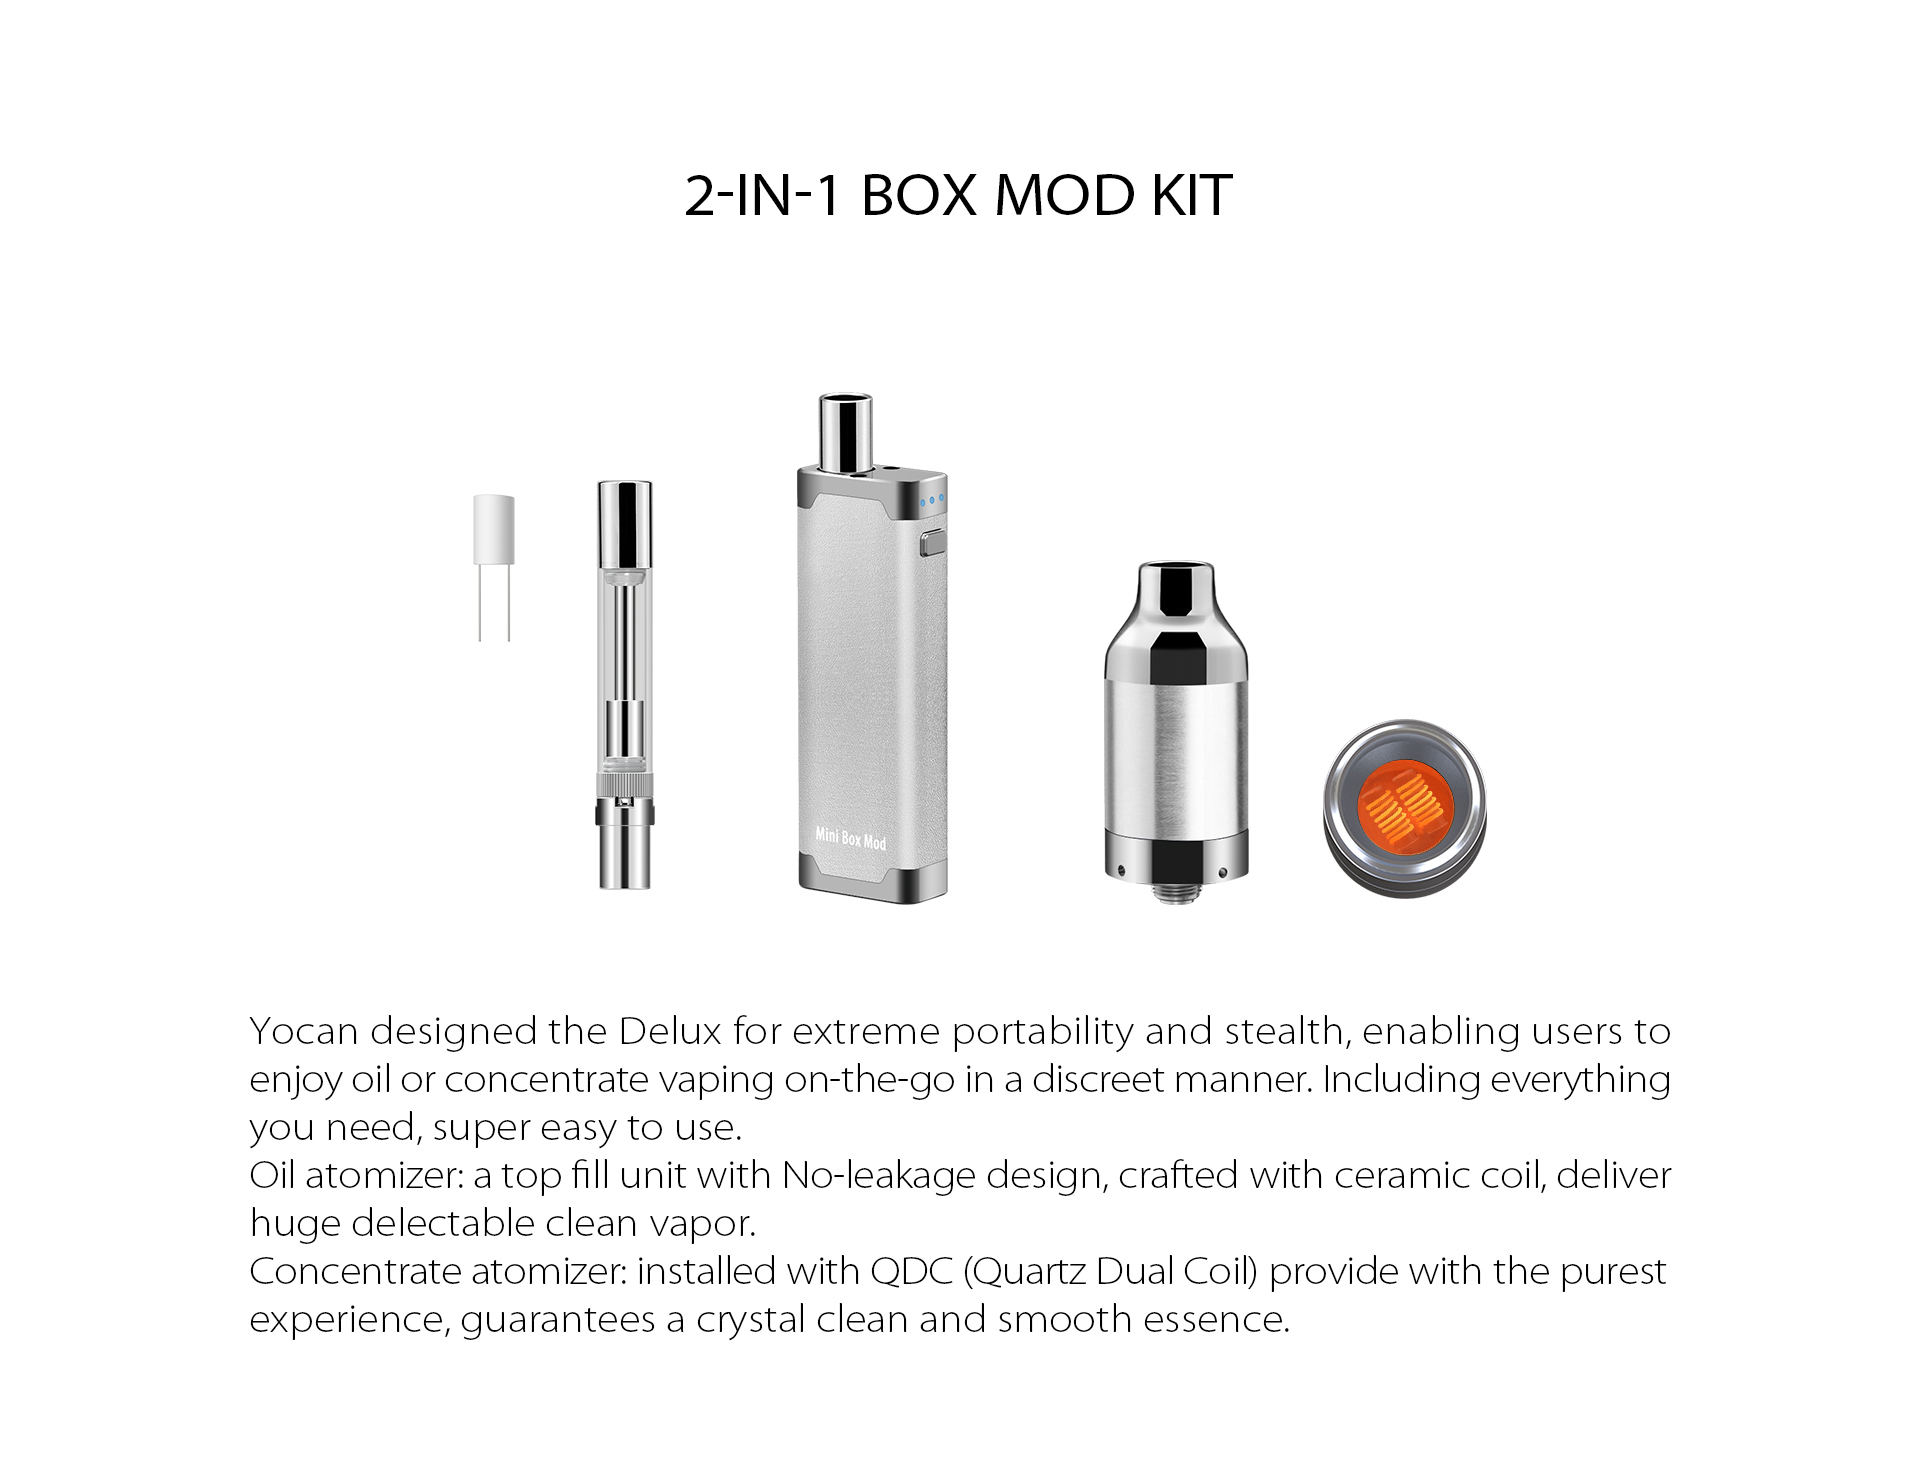 Yocan DeLux is 2-in-1 box mod kit.